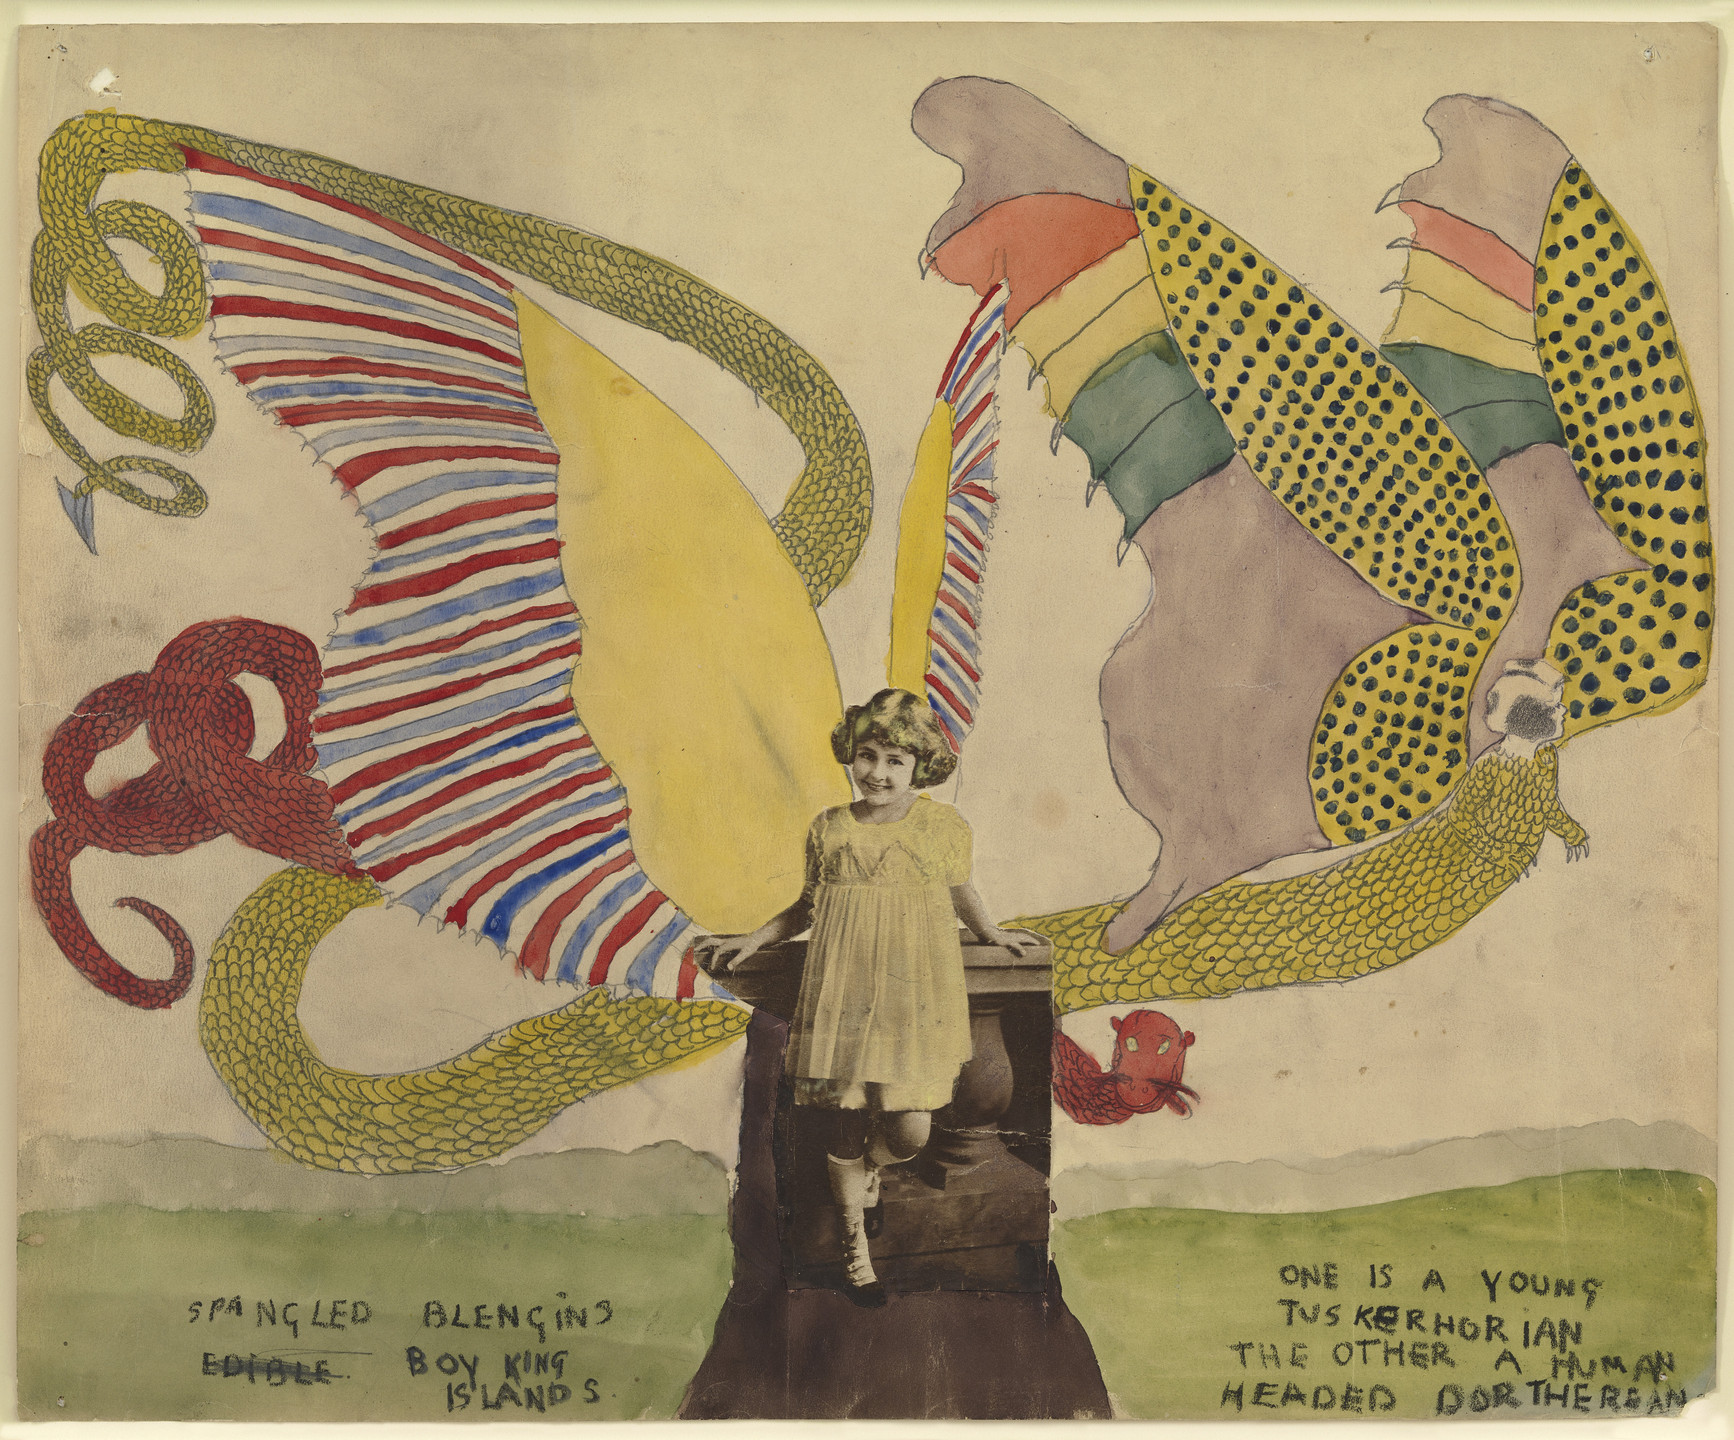 Henry Darger. Spangled Blengins. Boy King Islands. One is a young Tuskerhorian the other a human headed Dortherean.. (n.d.)